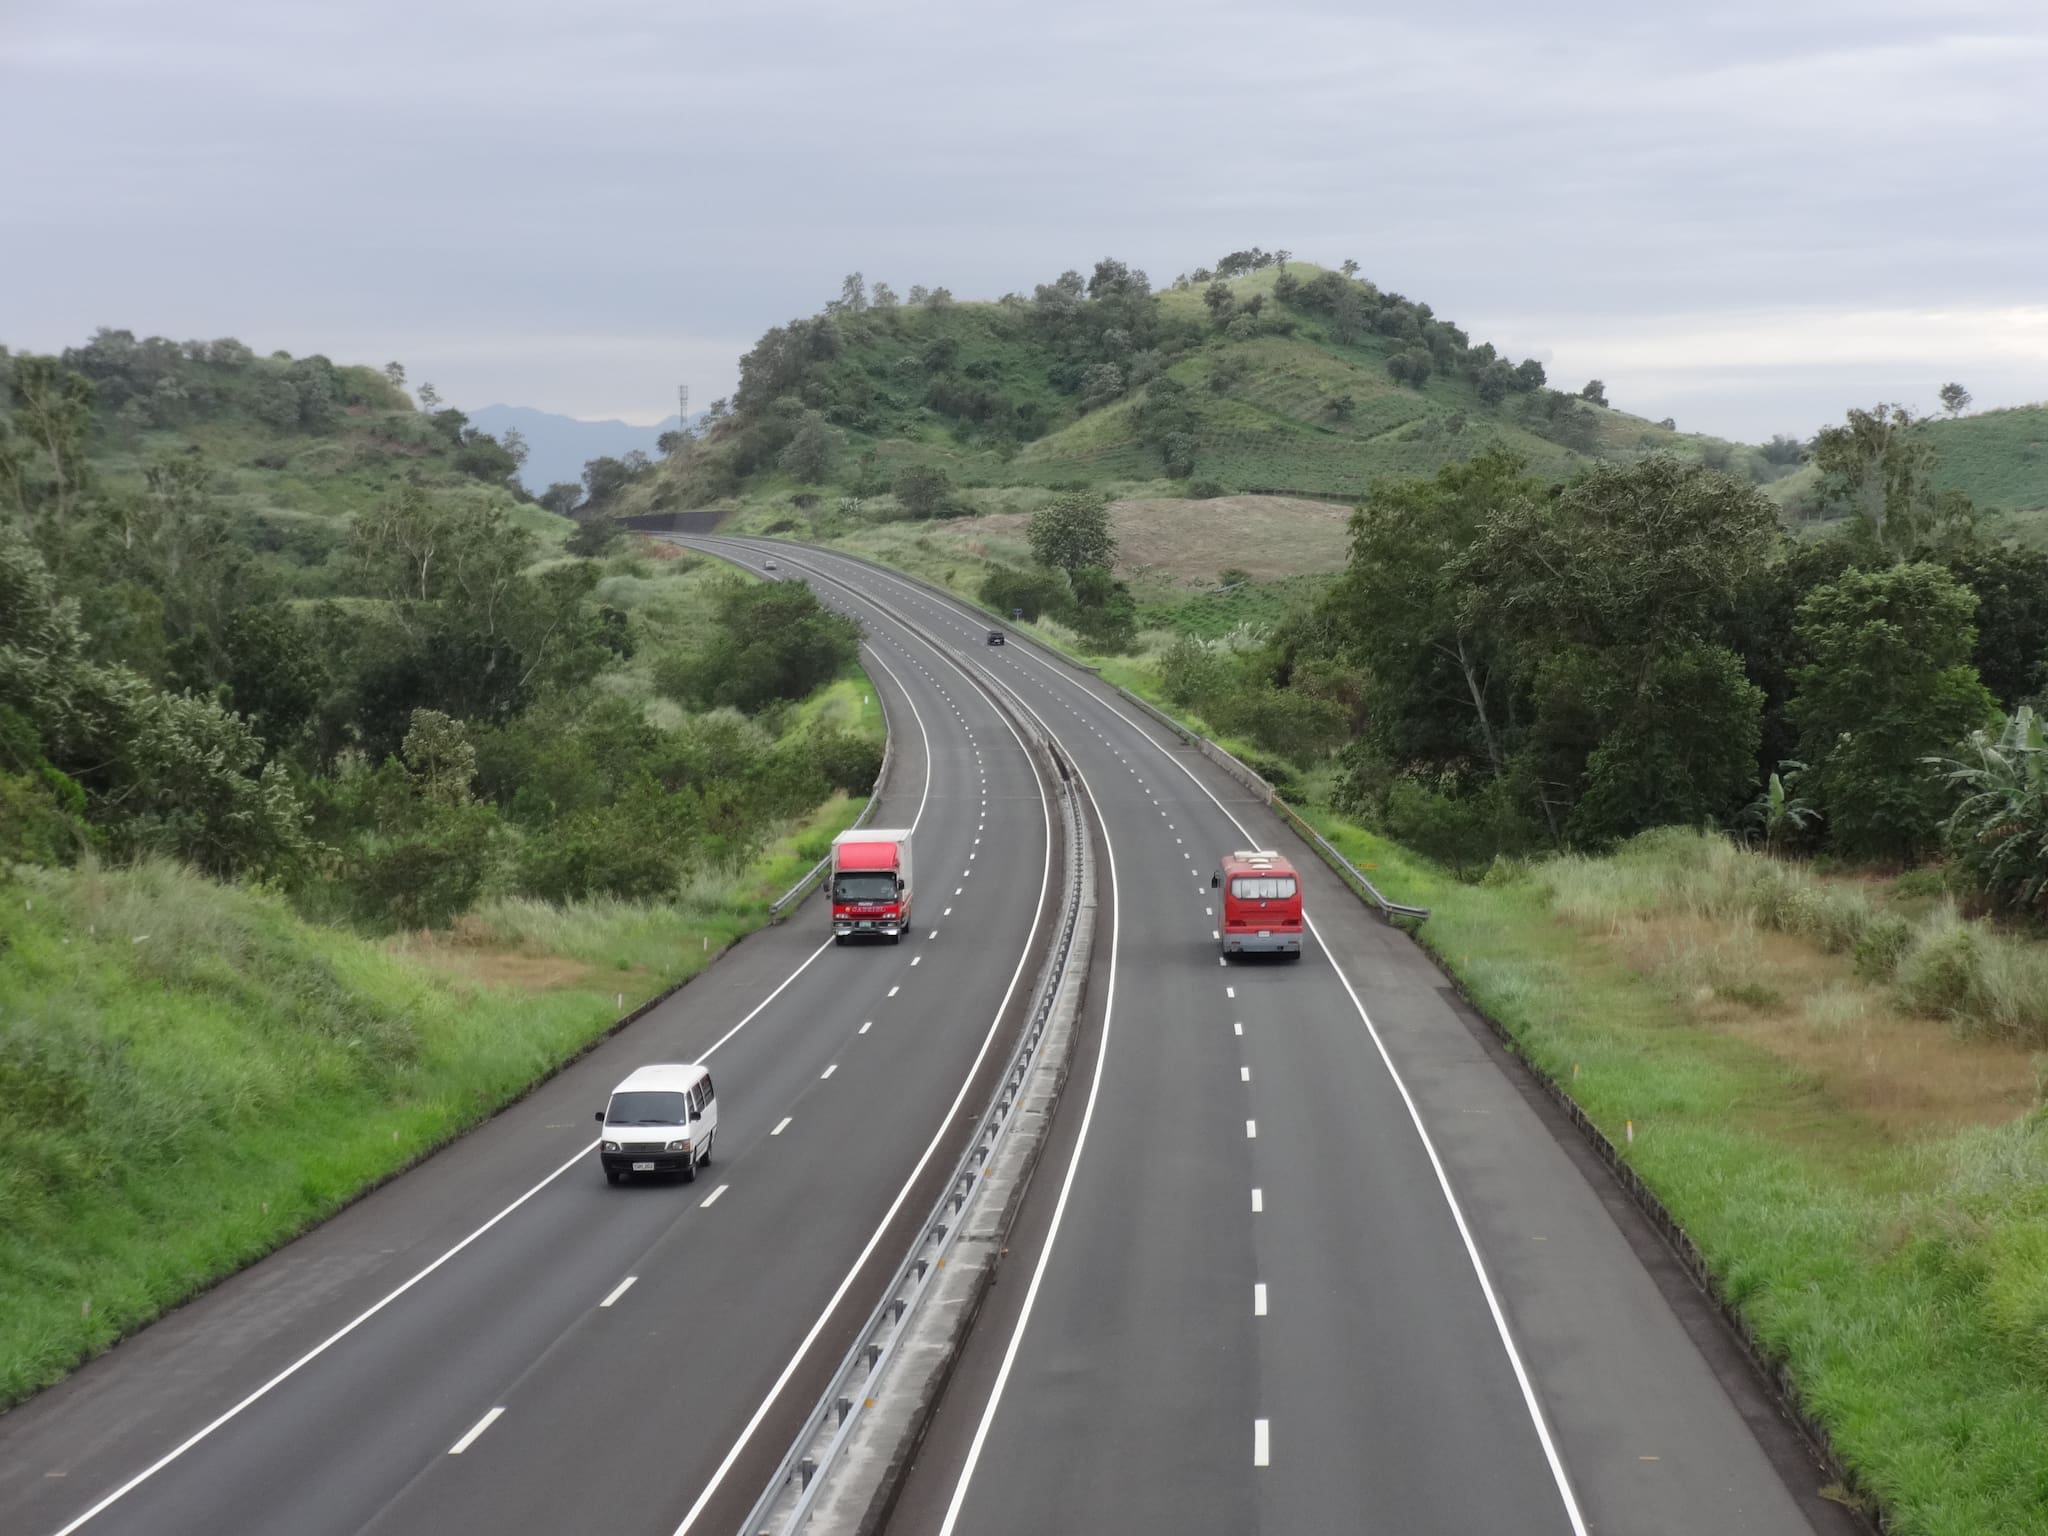 SCTEX to have Higher Toll Rates Starting Friday